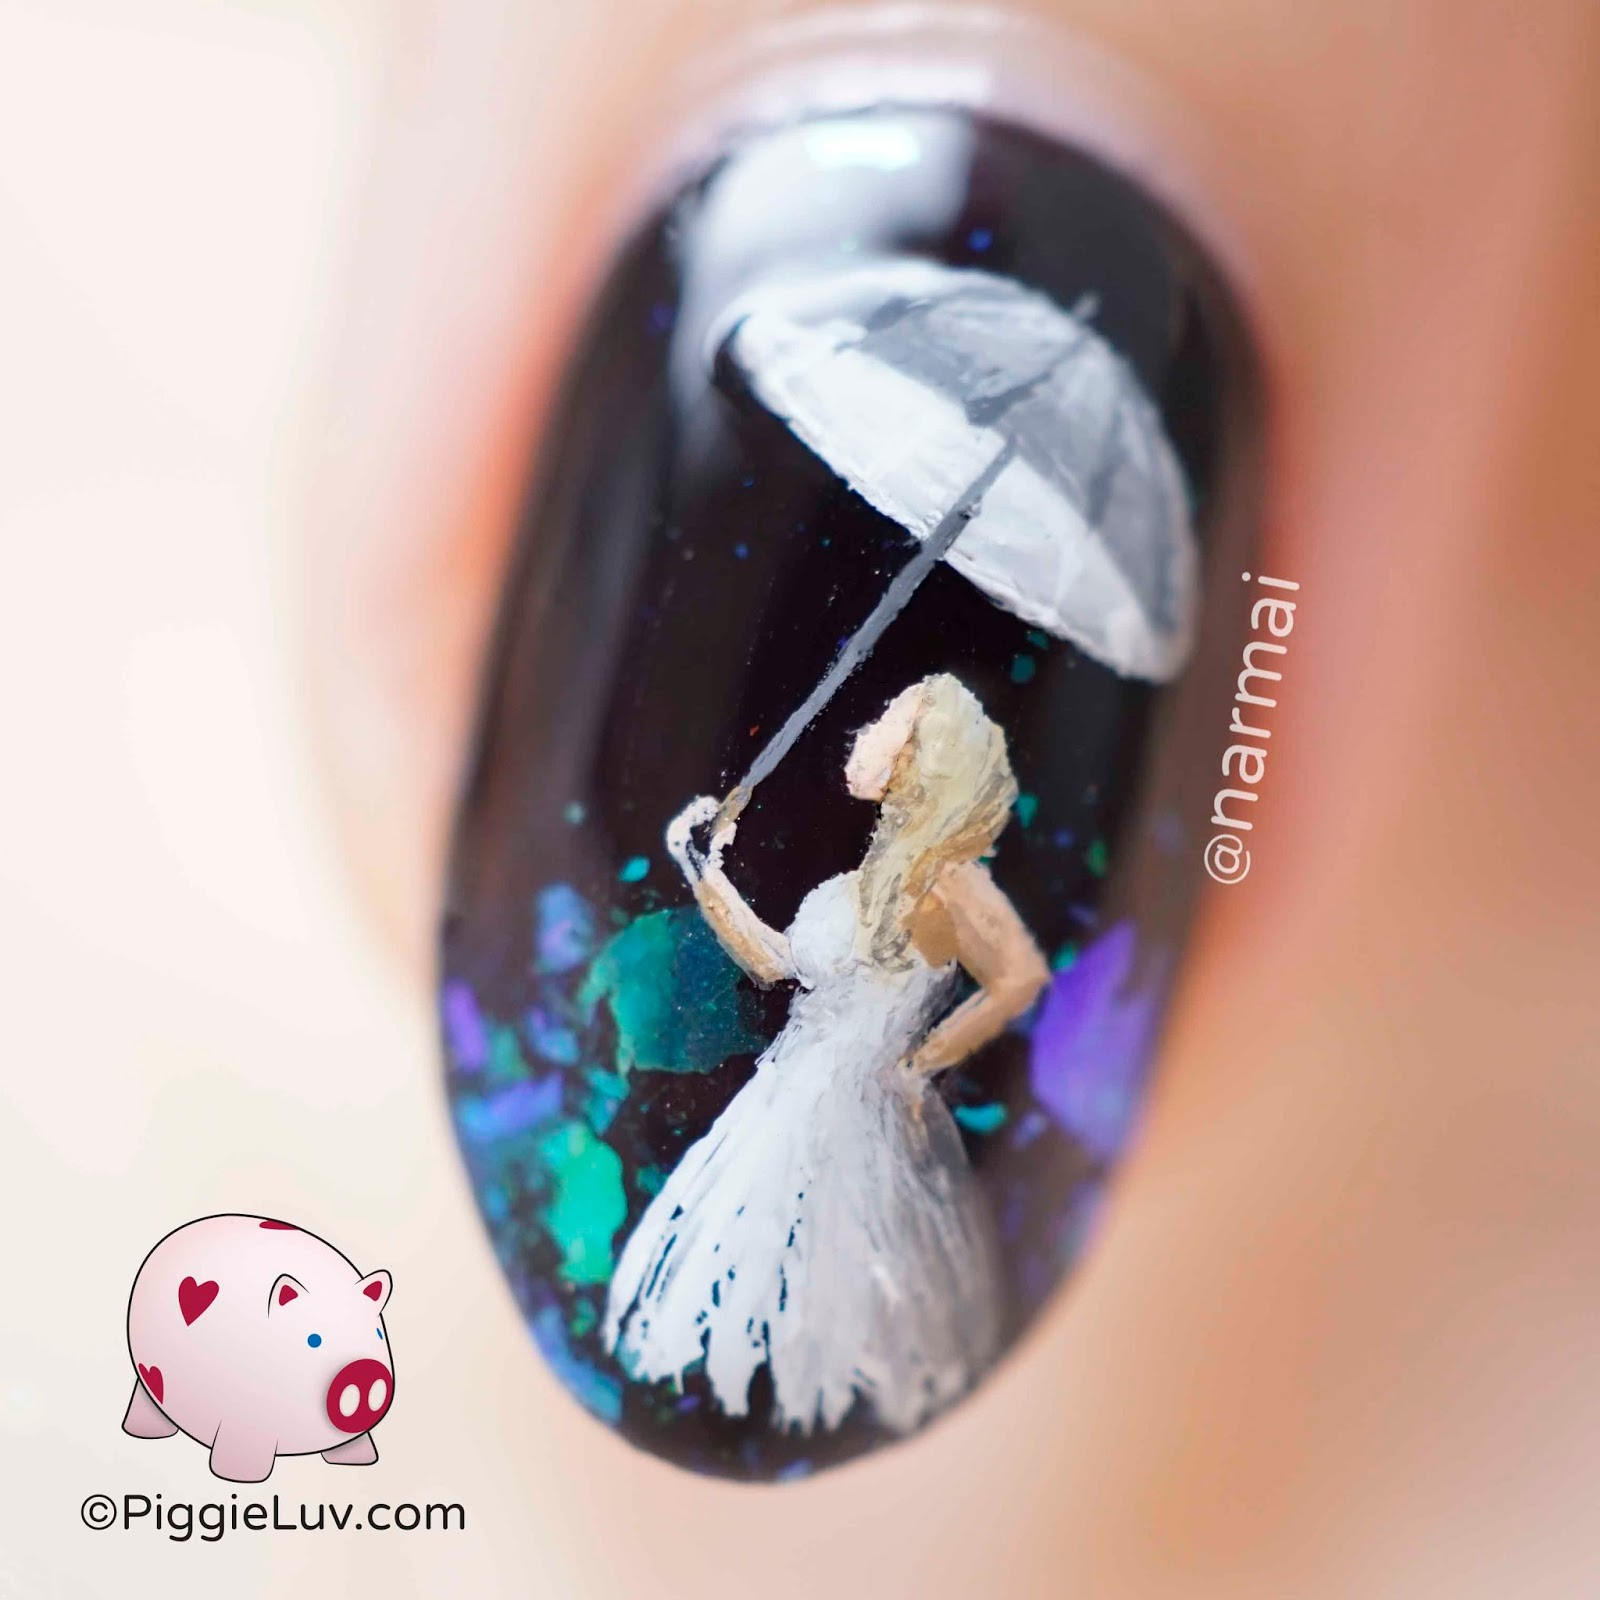 Piggieluv Umbrella Girl Nail Art